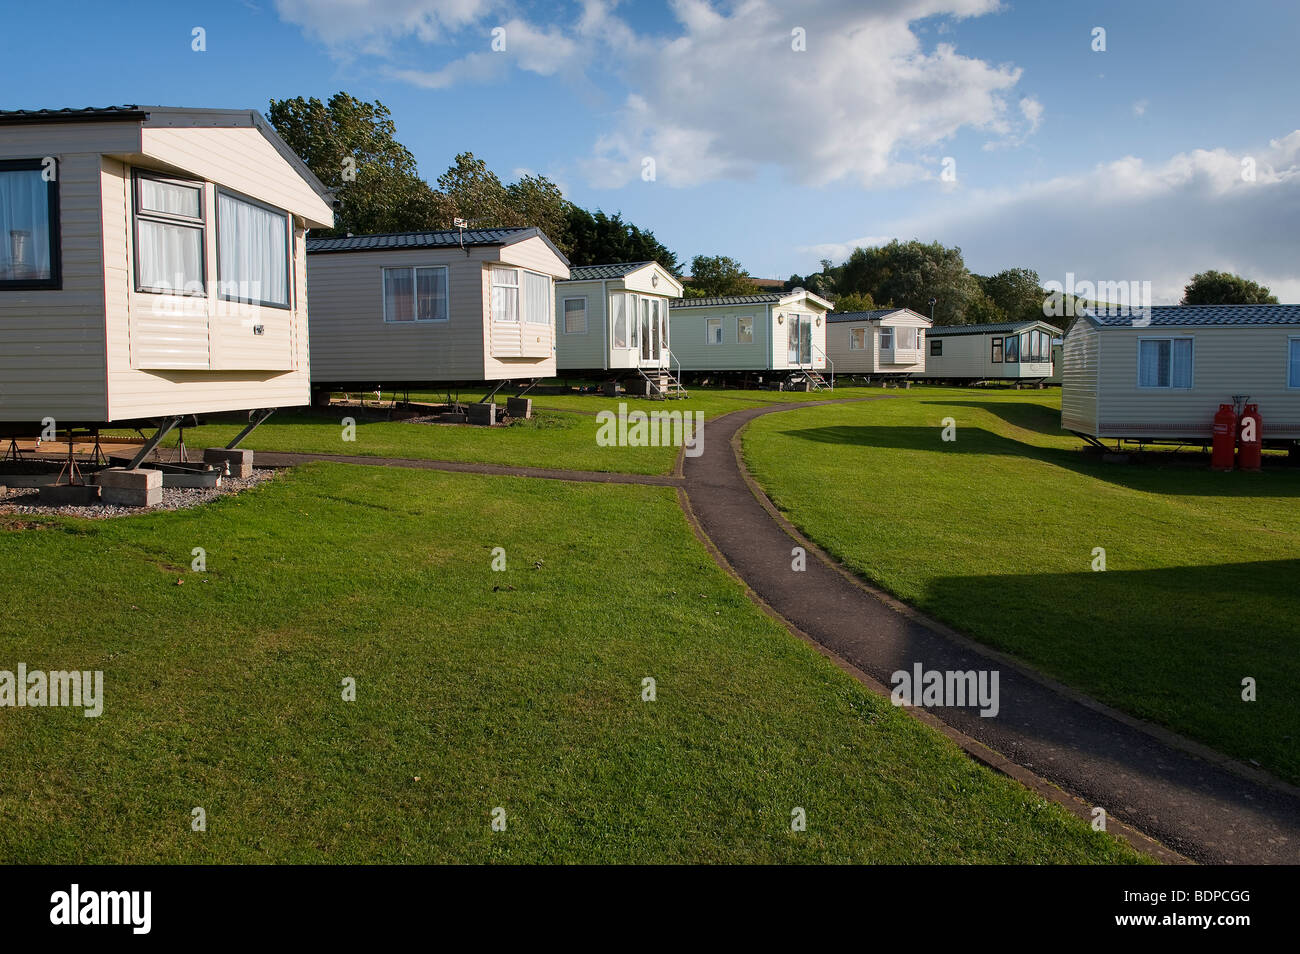 Caravan Park Holiday Home Site At Doniford Somerset With Calor Gas Cylinders